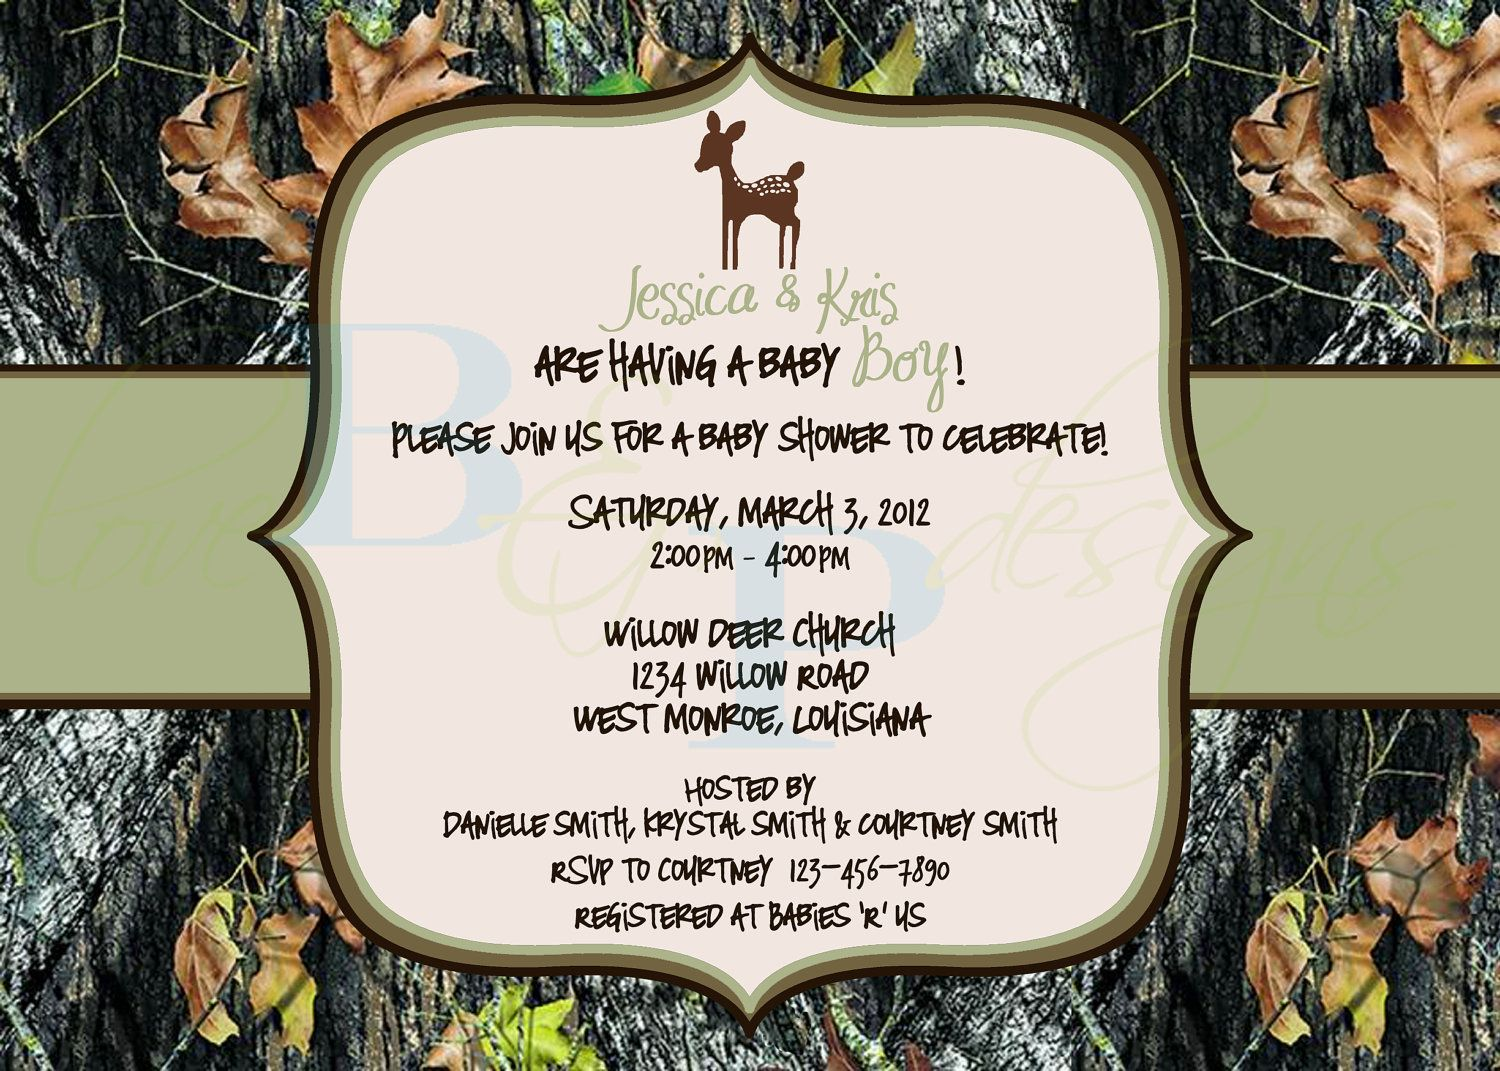 Camo Baby Shower Centerpiece | Mossy Oak Camo With Deer   Baby Shower  Invitation   Digital